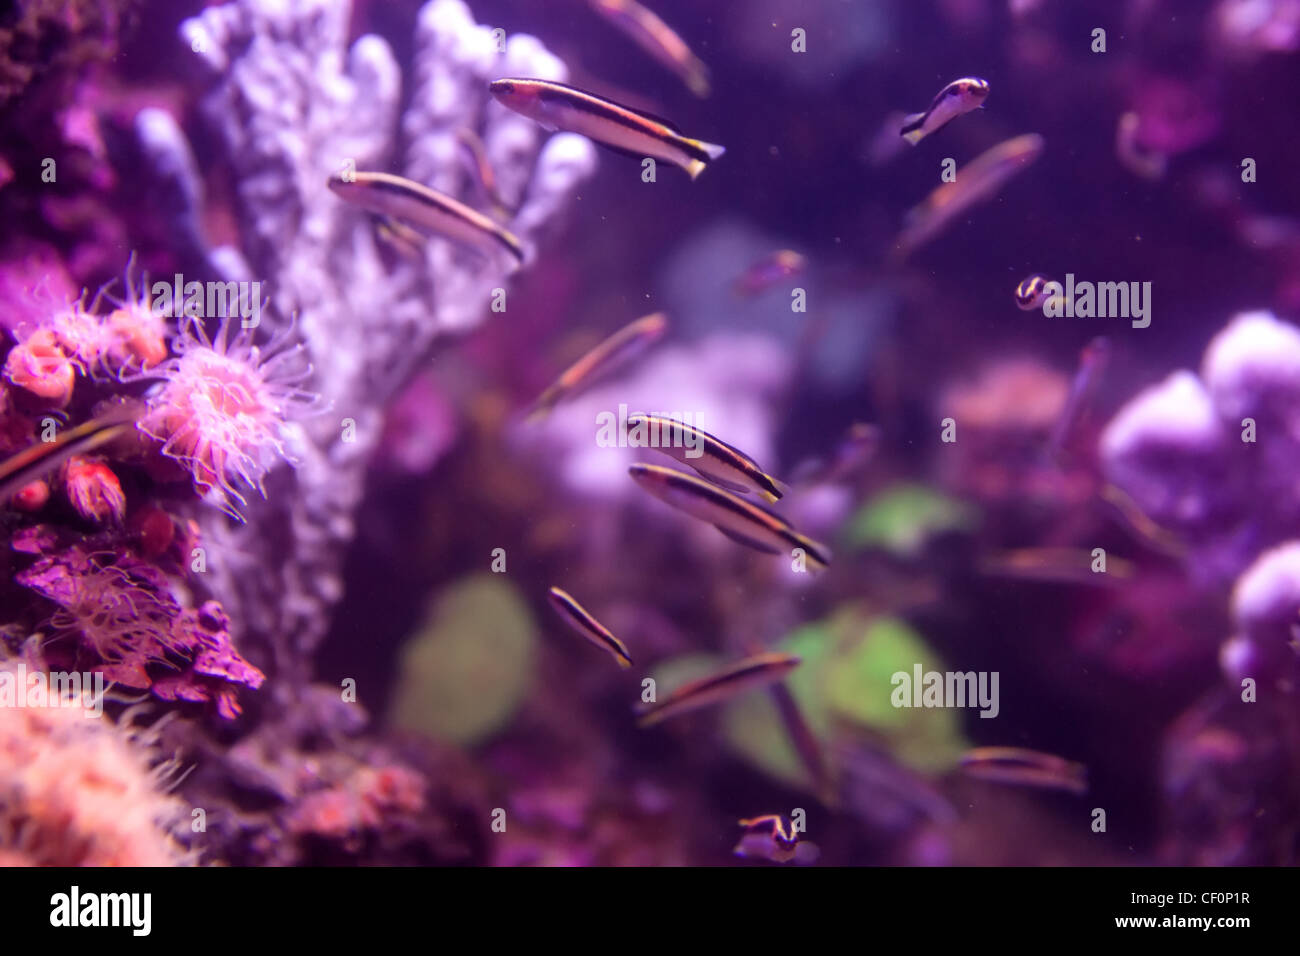 fishes coral and anemones in the bottom of aquarium or sea Stock Photo